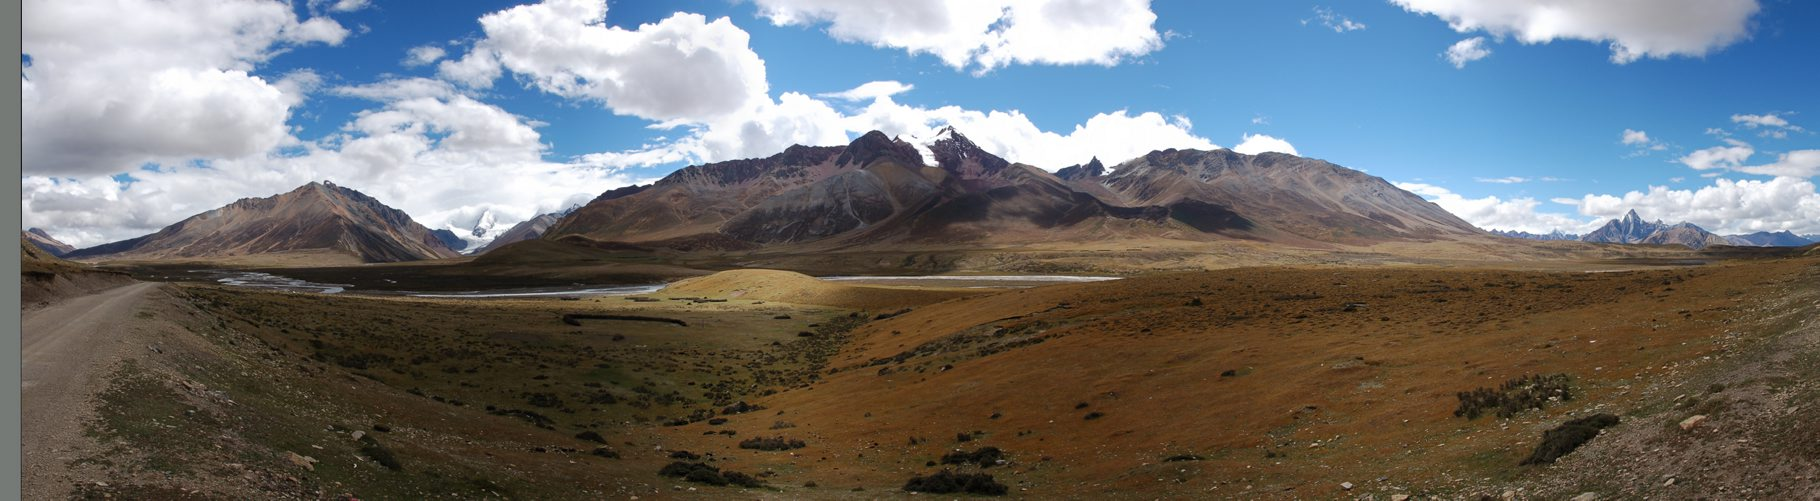 China, Tibet, Rawu, Demo La, 4600m